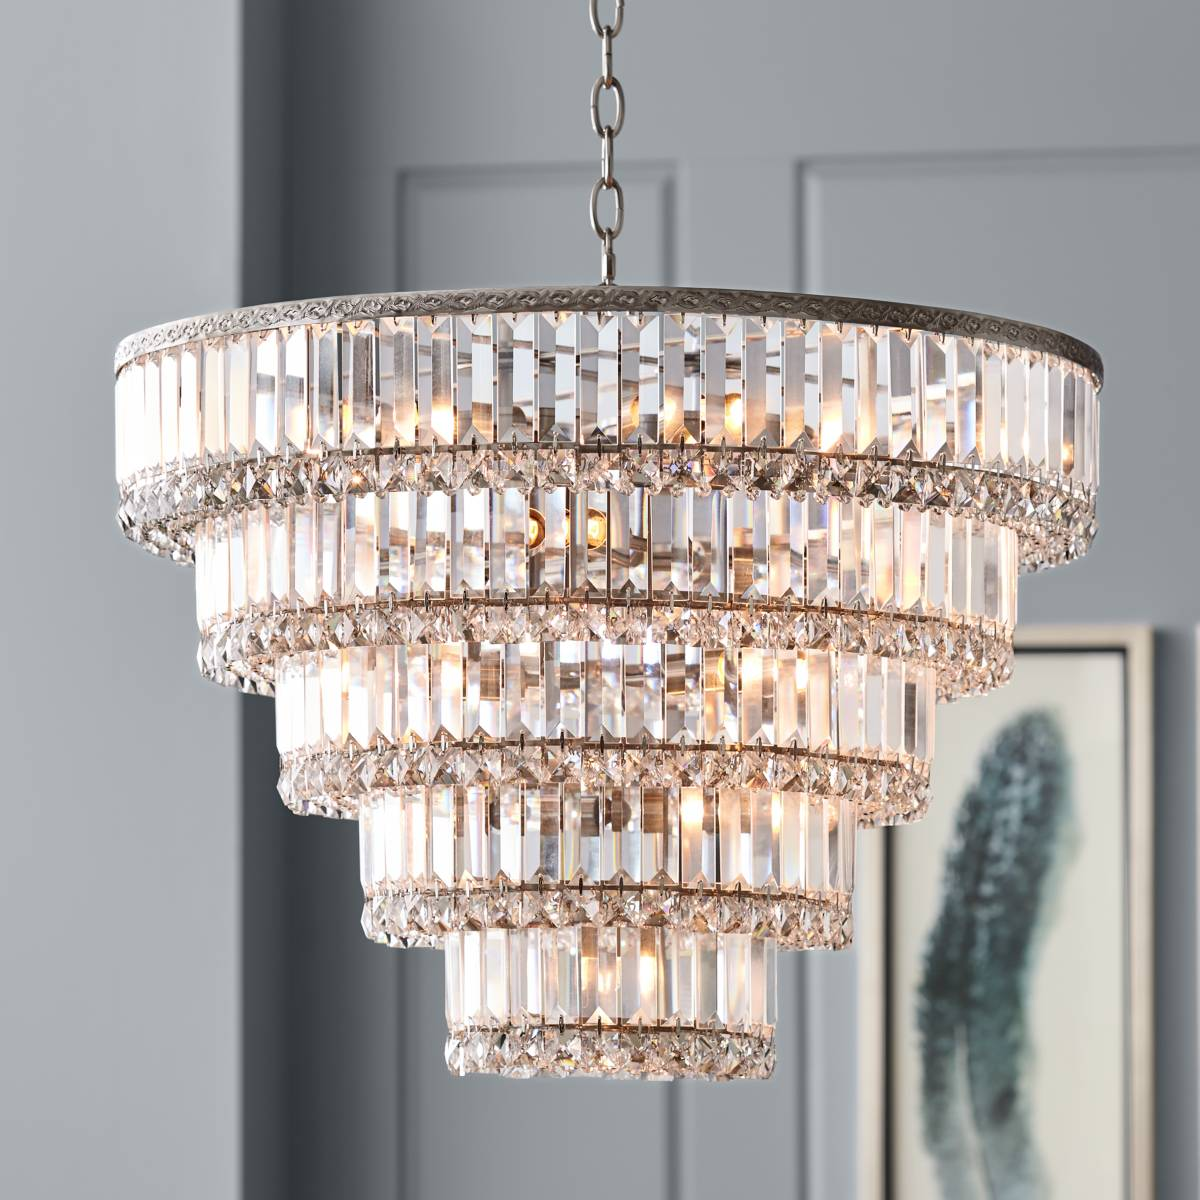 Lamp Plus Stores: Chandelier Lighting Fixtures